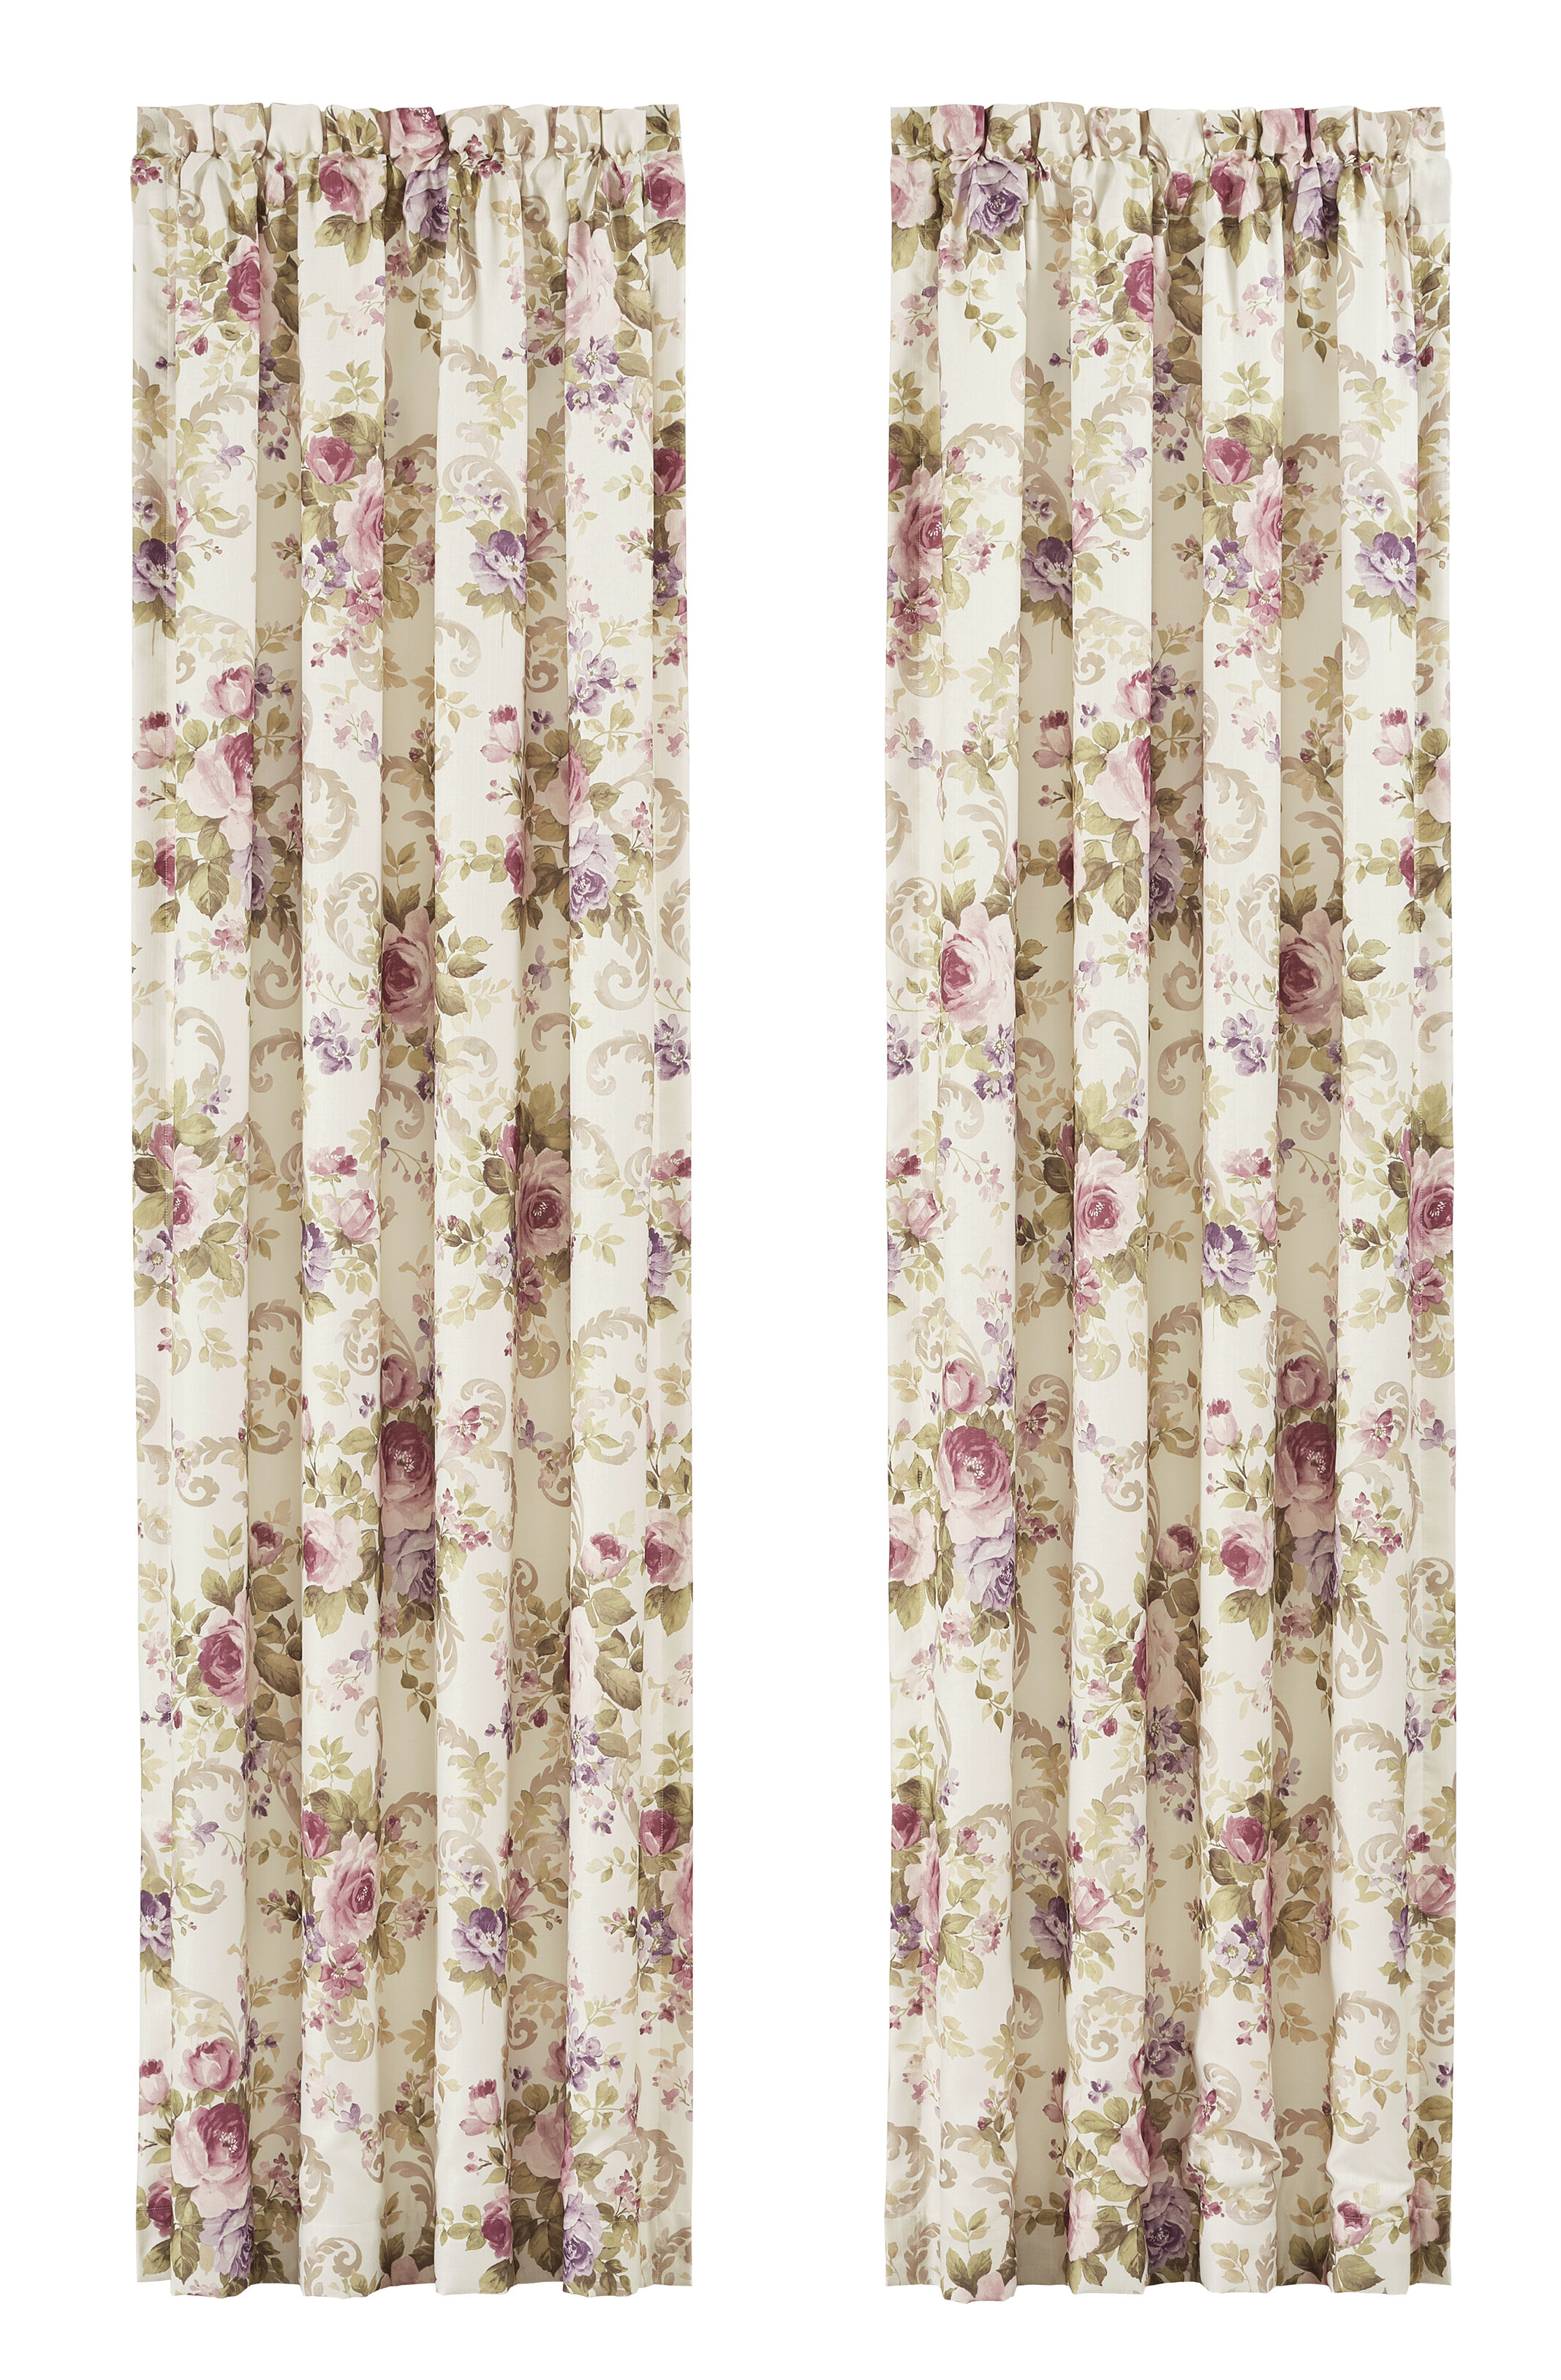 Ronaldo Window Floral / Flower Room Darkening Rod Pocket Curtain Panels inside Floral Pattern Room Darkening Window Curtain Panel Pairs (Image 20 of 20)